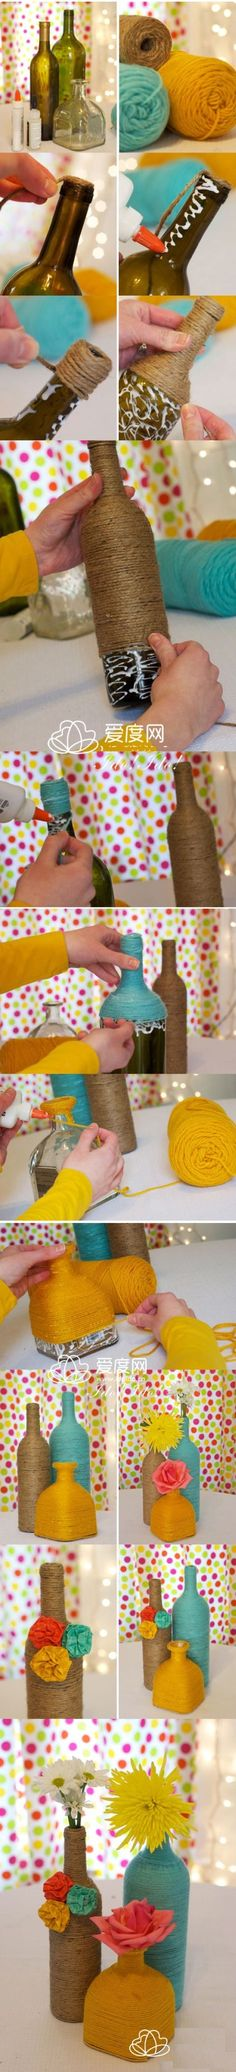 Funny bottles - do it yourself stuff